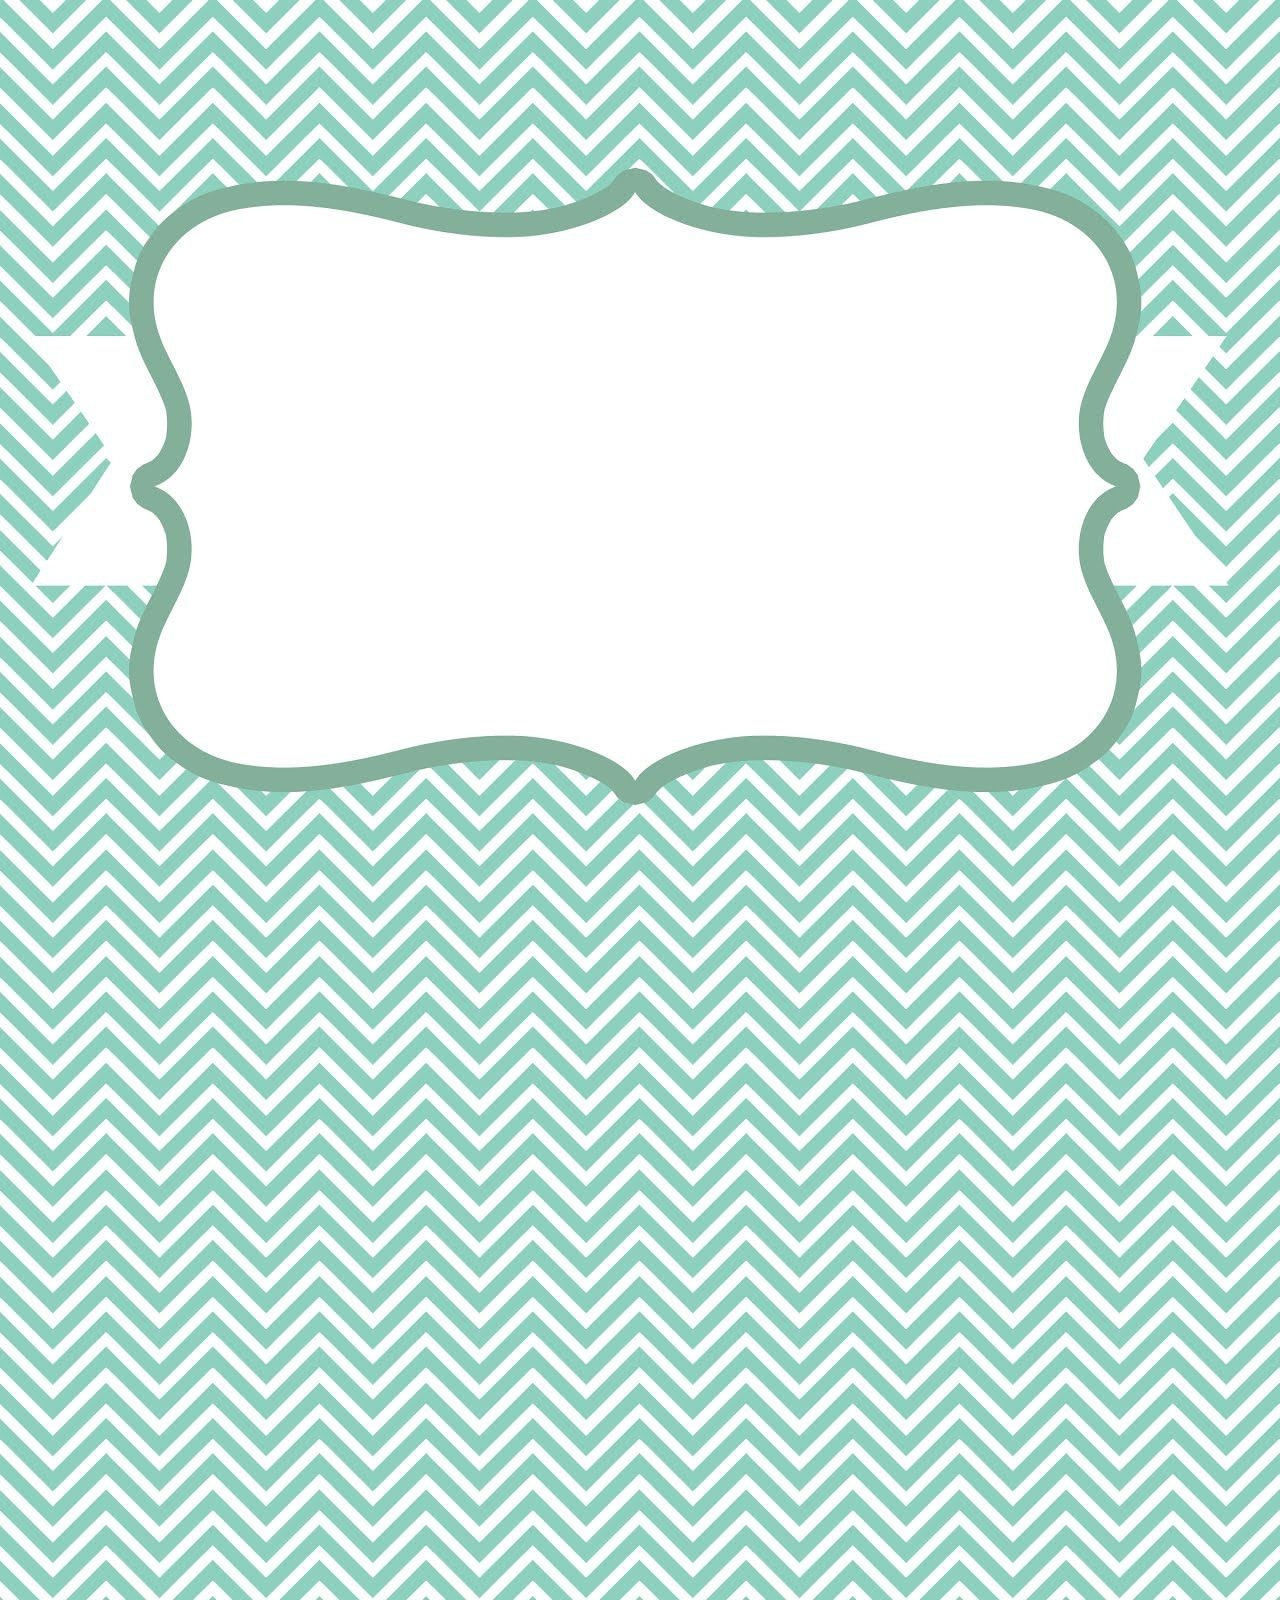 Binder Cover Templates Binder Cover Templates Lilly Pulitzer Binder - Free Editable Printable Binder Covers